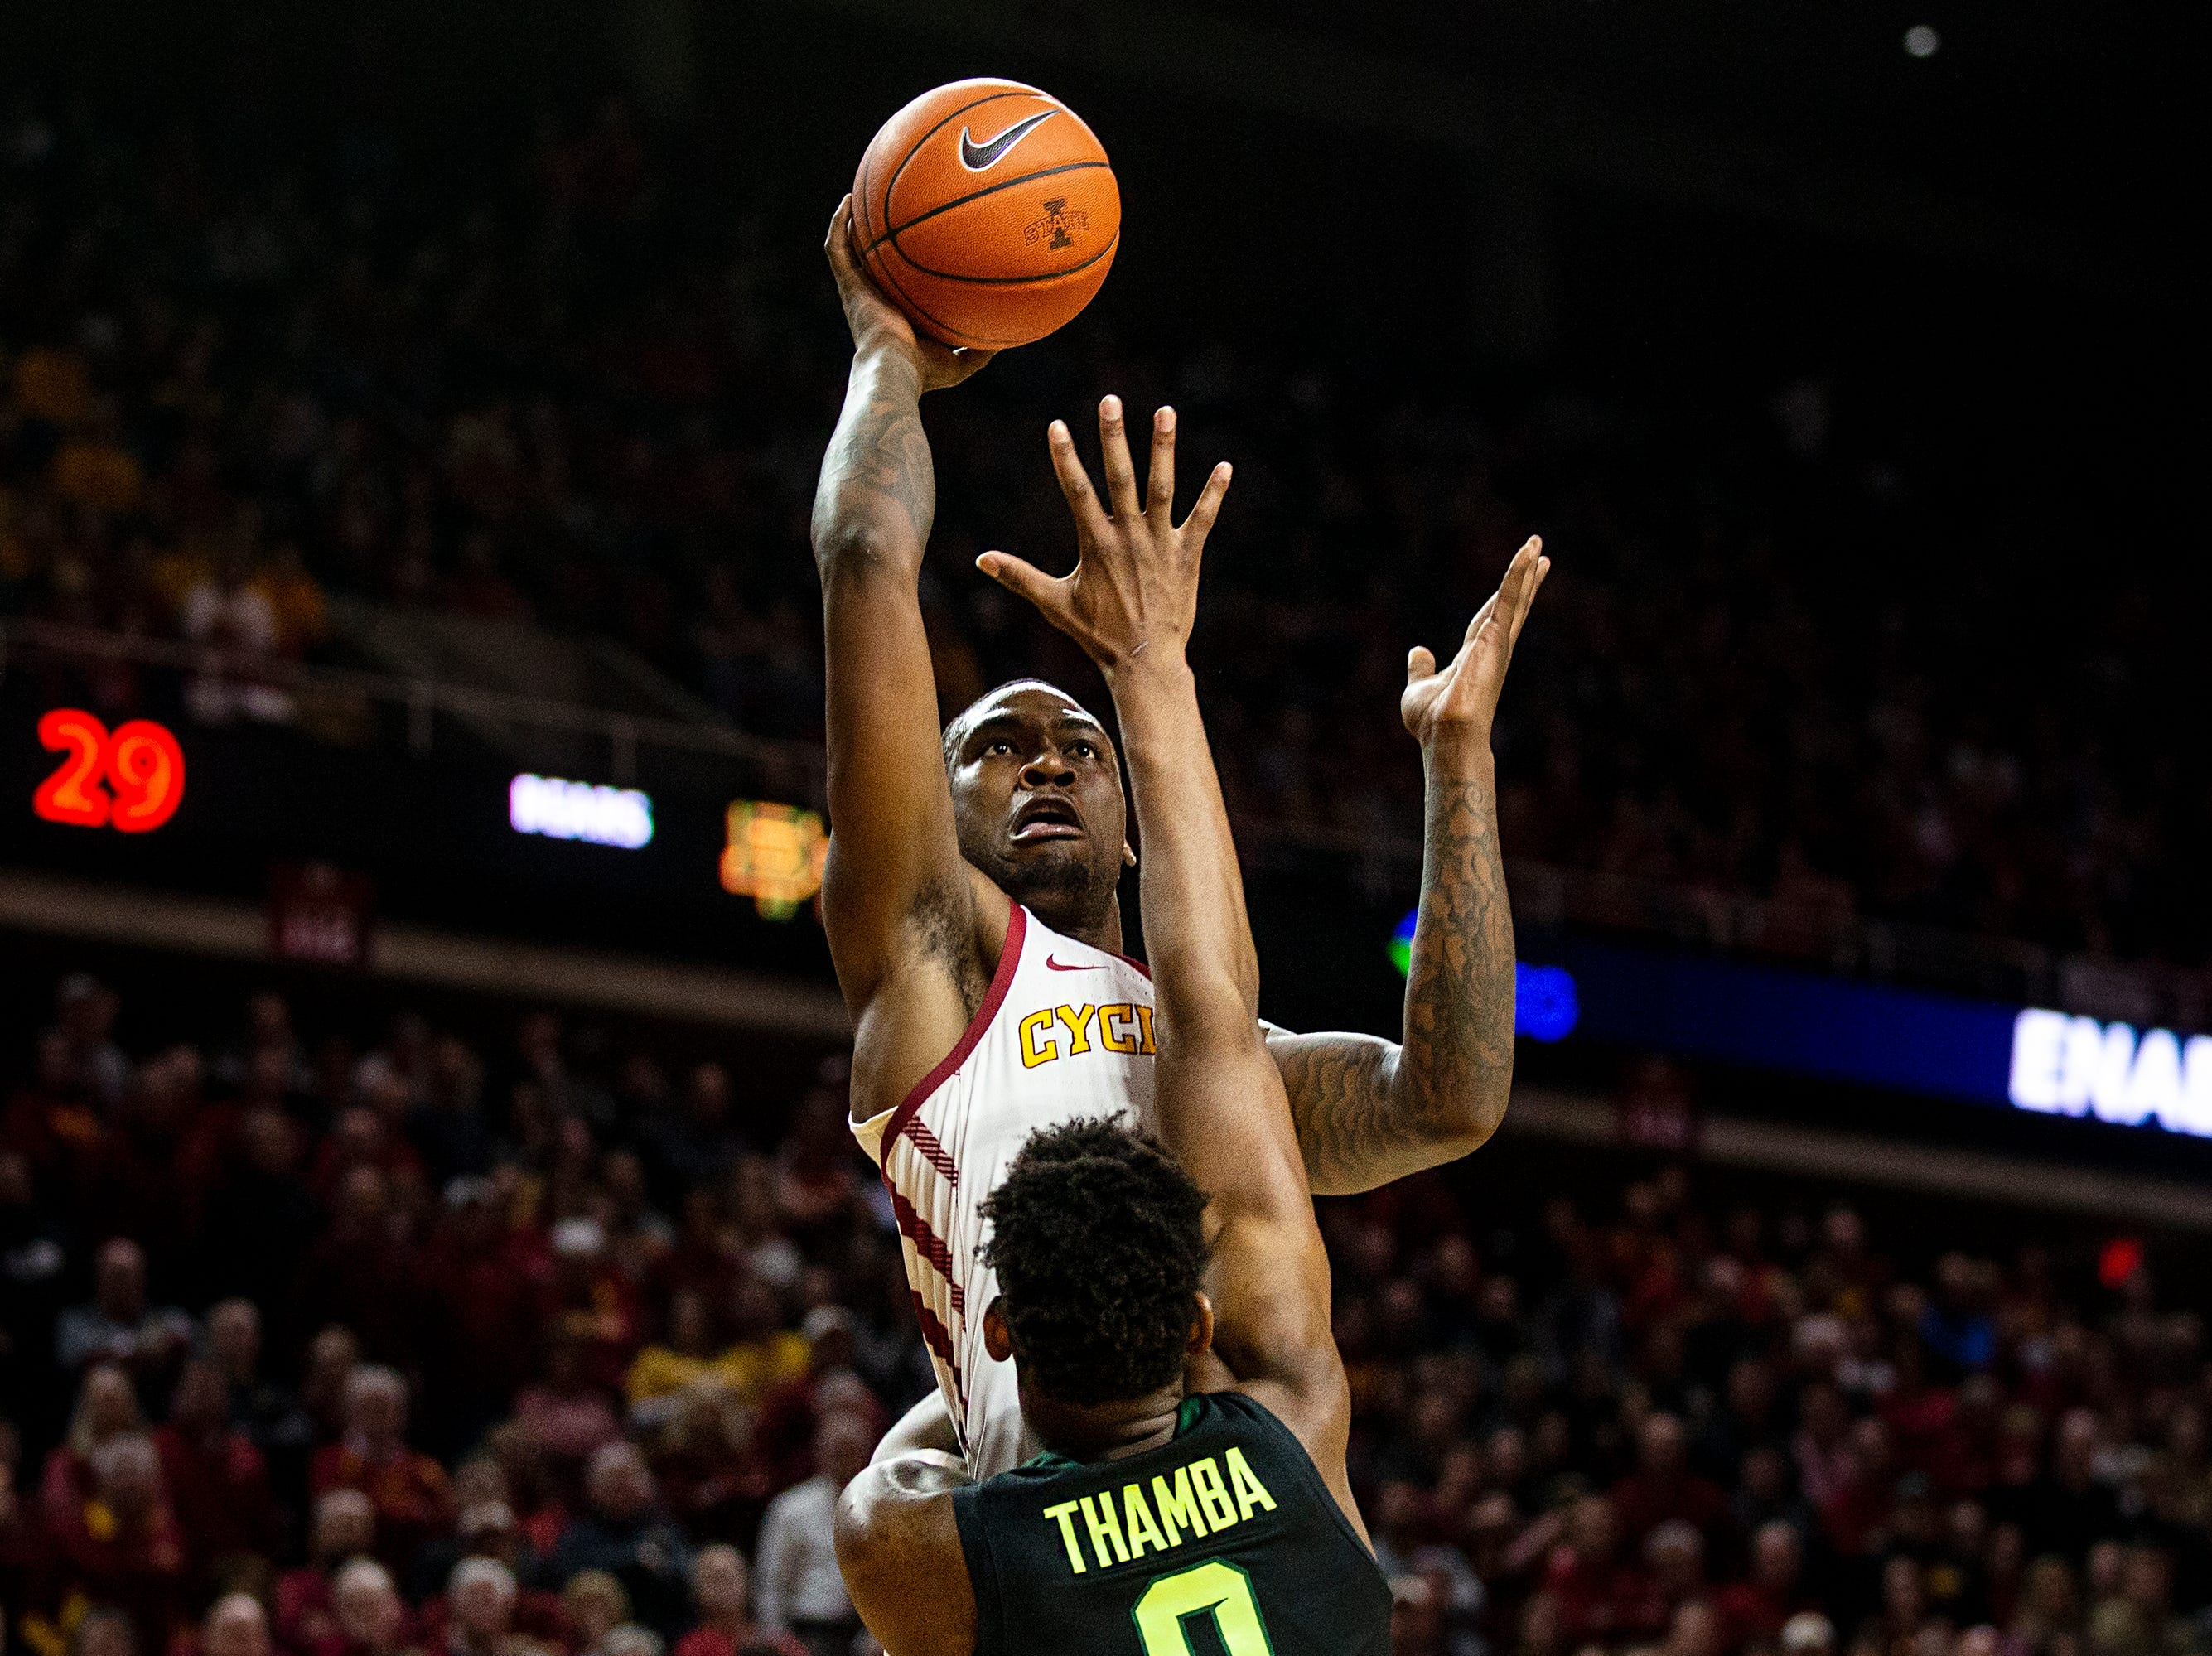 Iowa State's Cameron Lard shoots the ball during the Iowa State men's basketball game against Baylor on Tuesday, Feb. 19, 2019, in Hilton Coliseum.